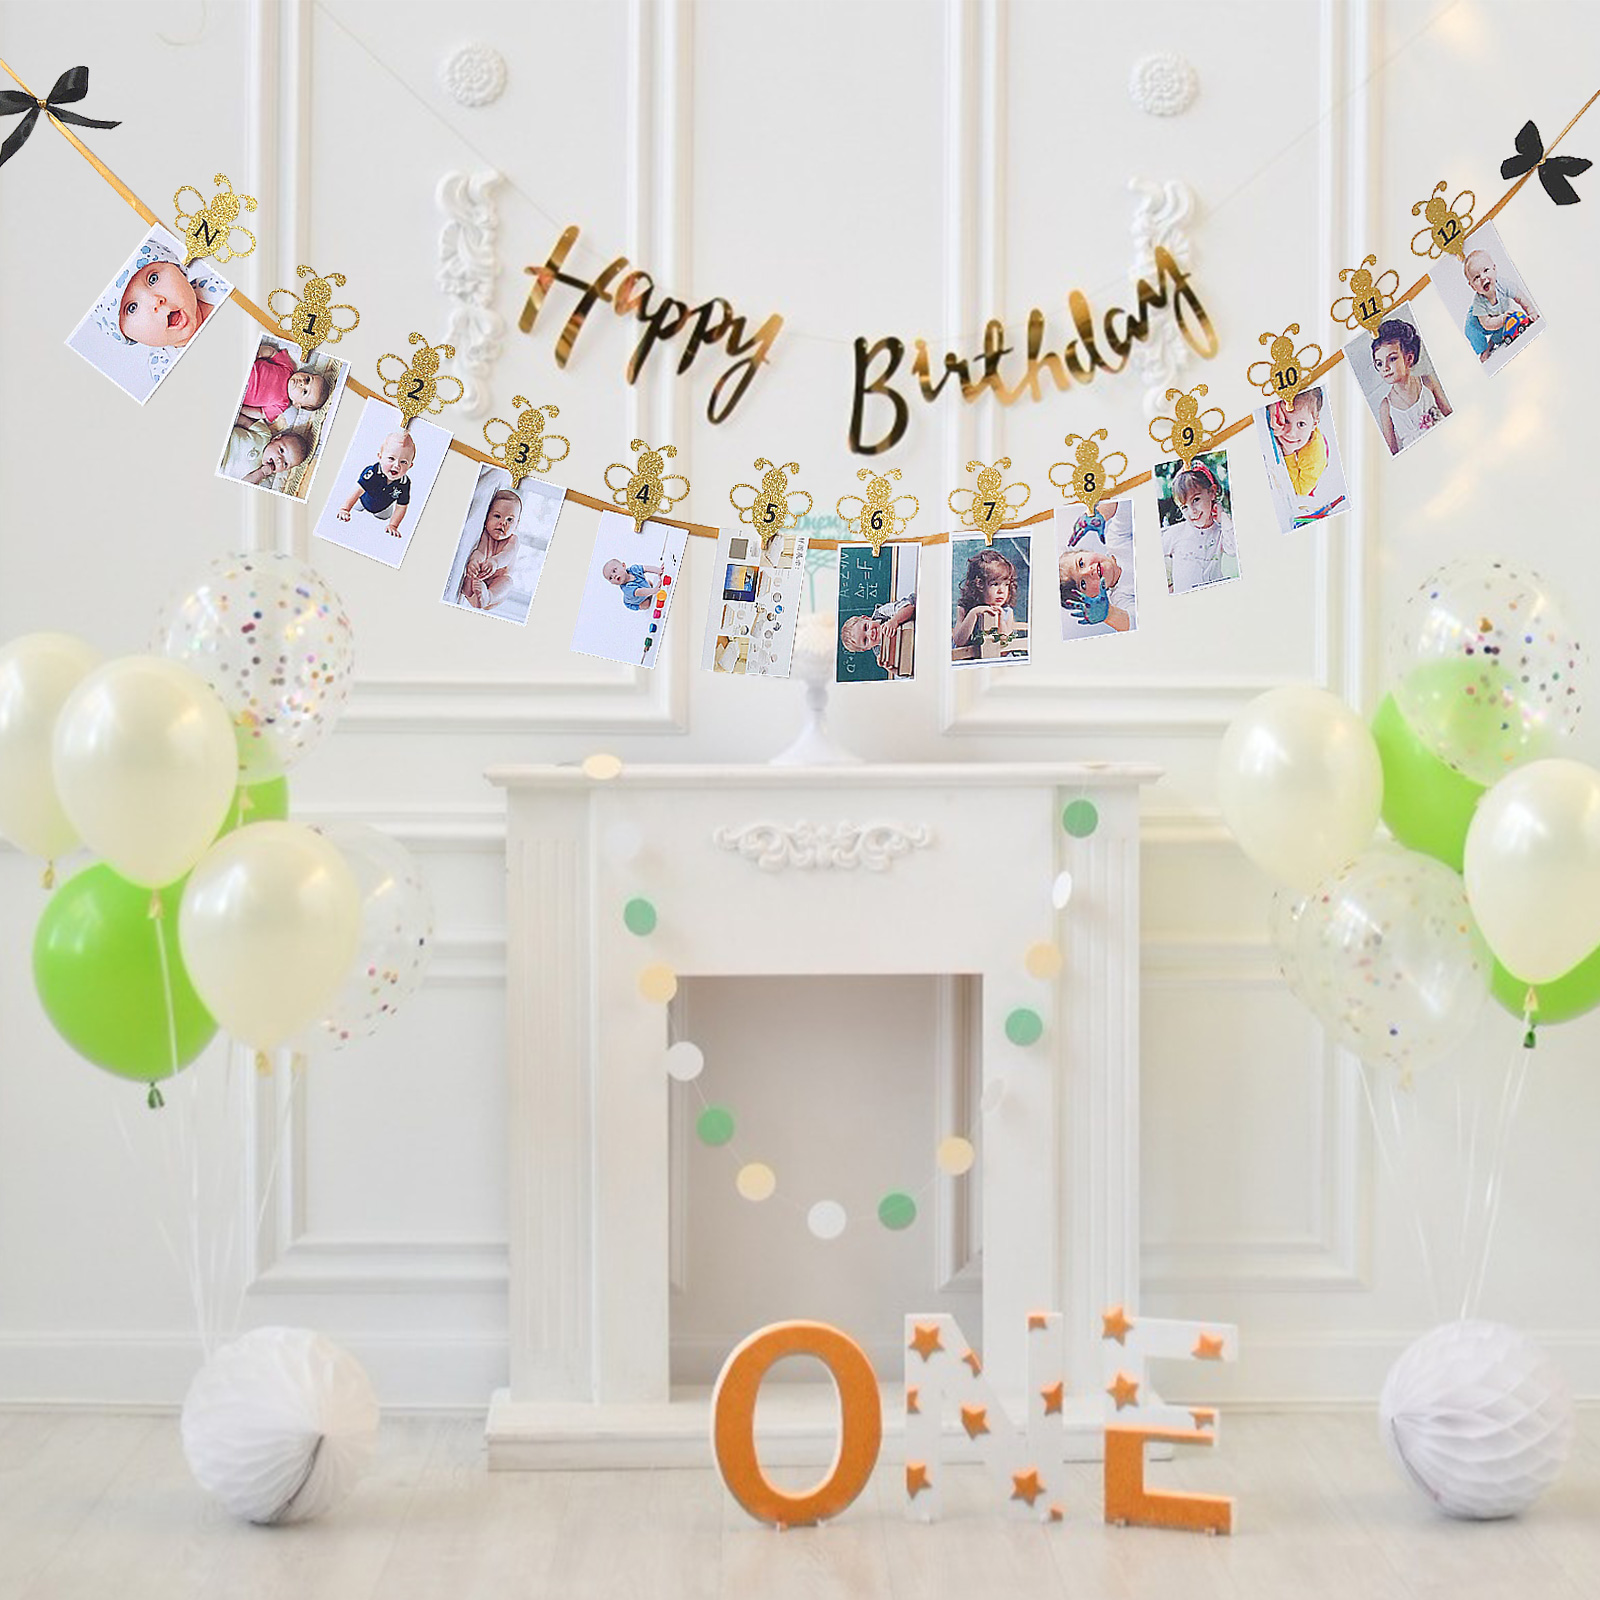 Honey <font><b>Bee</b></font> 1 Years Old Flash Photo Frame Banner <font><b>Bee</b></font> Confetti for Baby Shower Kids Birthday <font><b>Party</b></font> Decor Wedding <font><b>Party</b></font> <font><b>Supplies</b></font> image